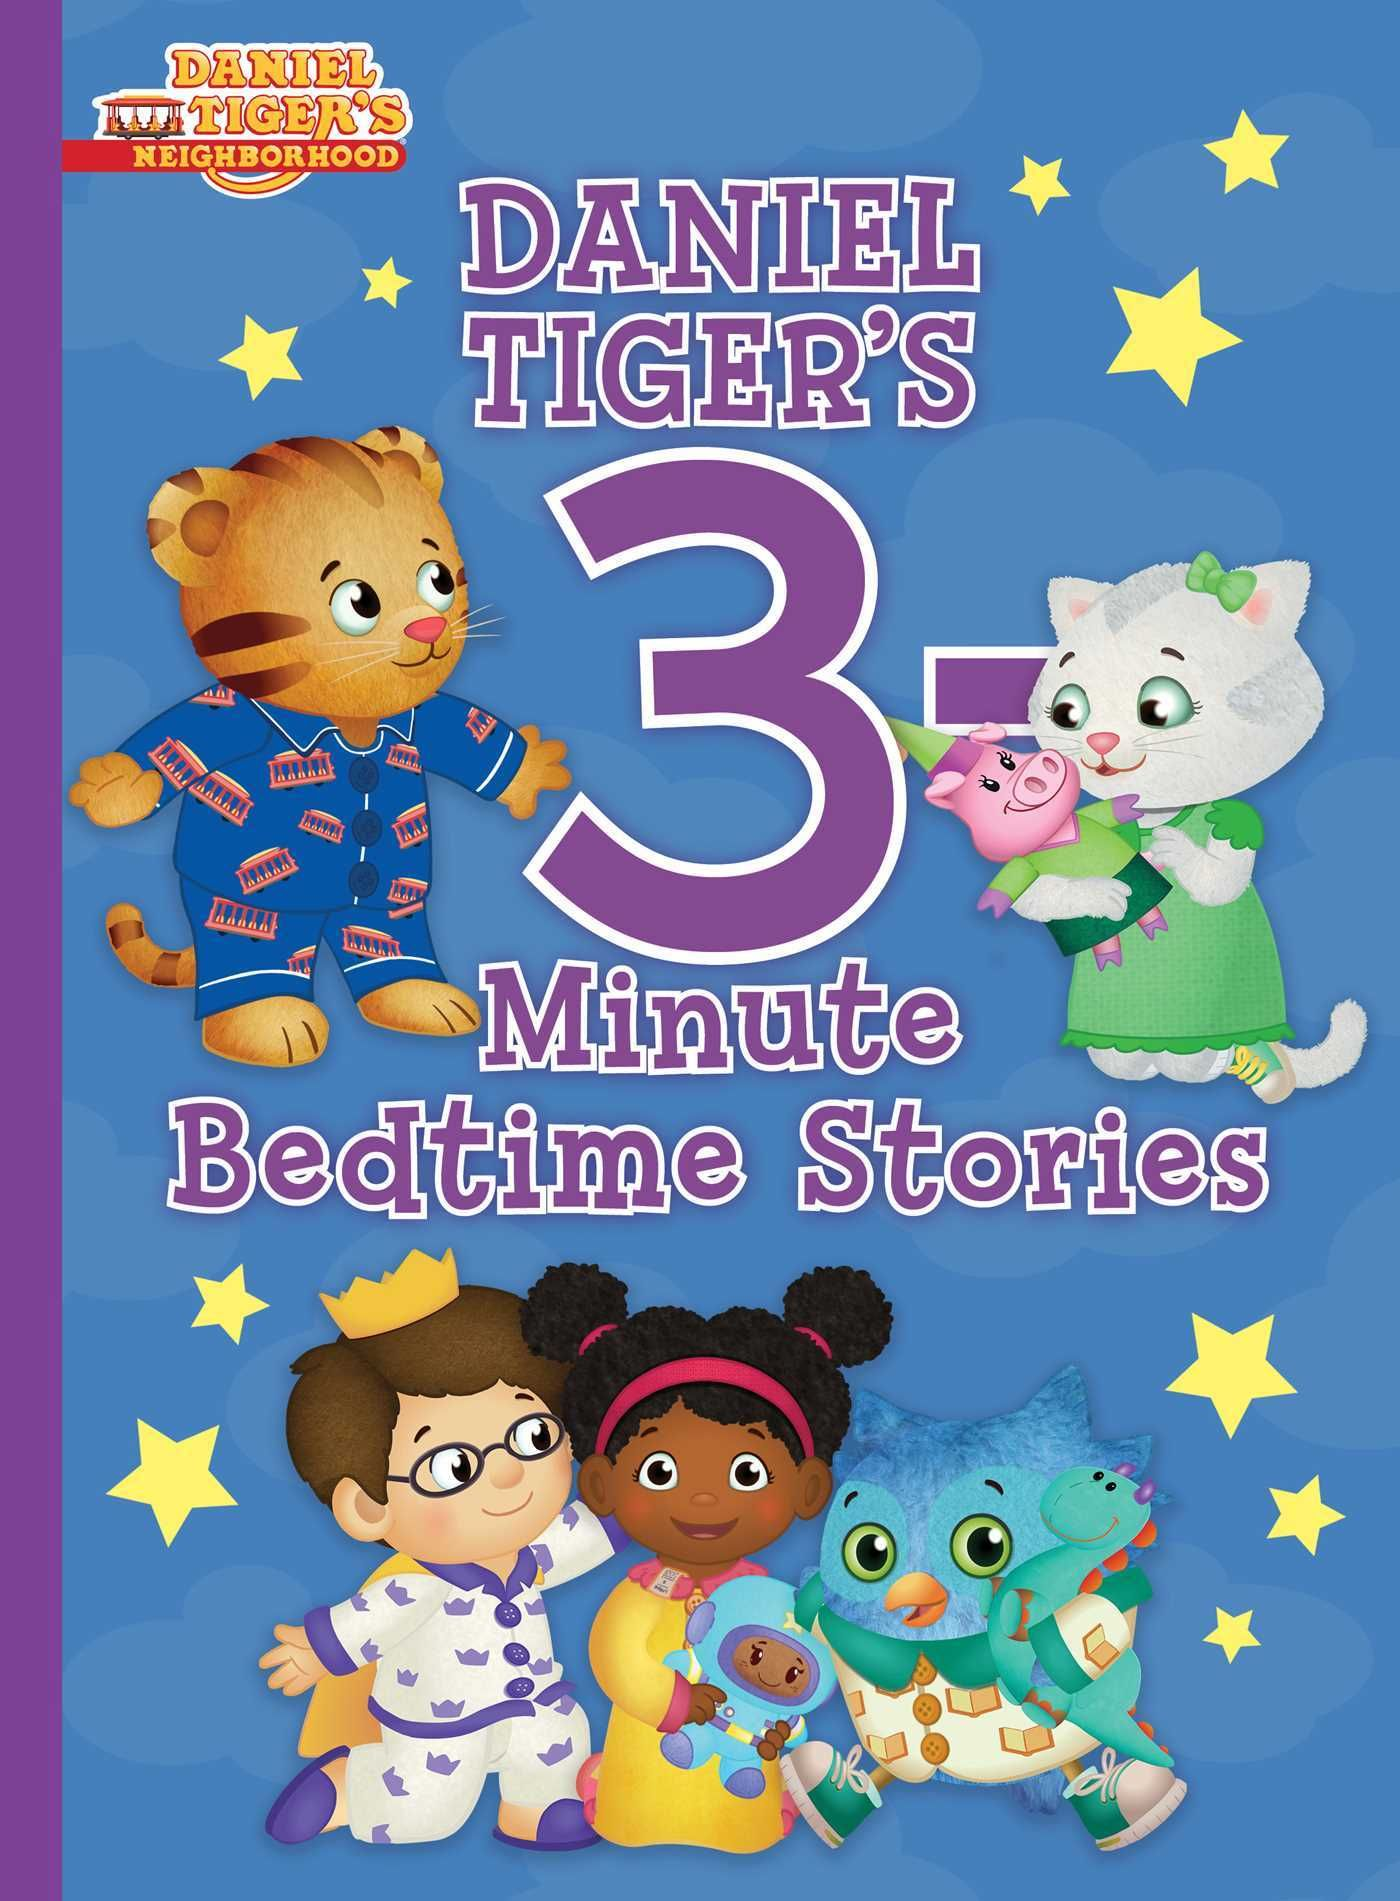 [DOWNLOAD PDF] Daniel Tiger's 3Minute Bedtime Stories by